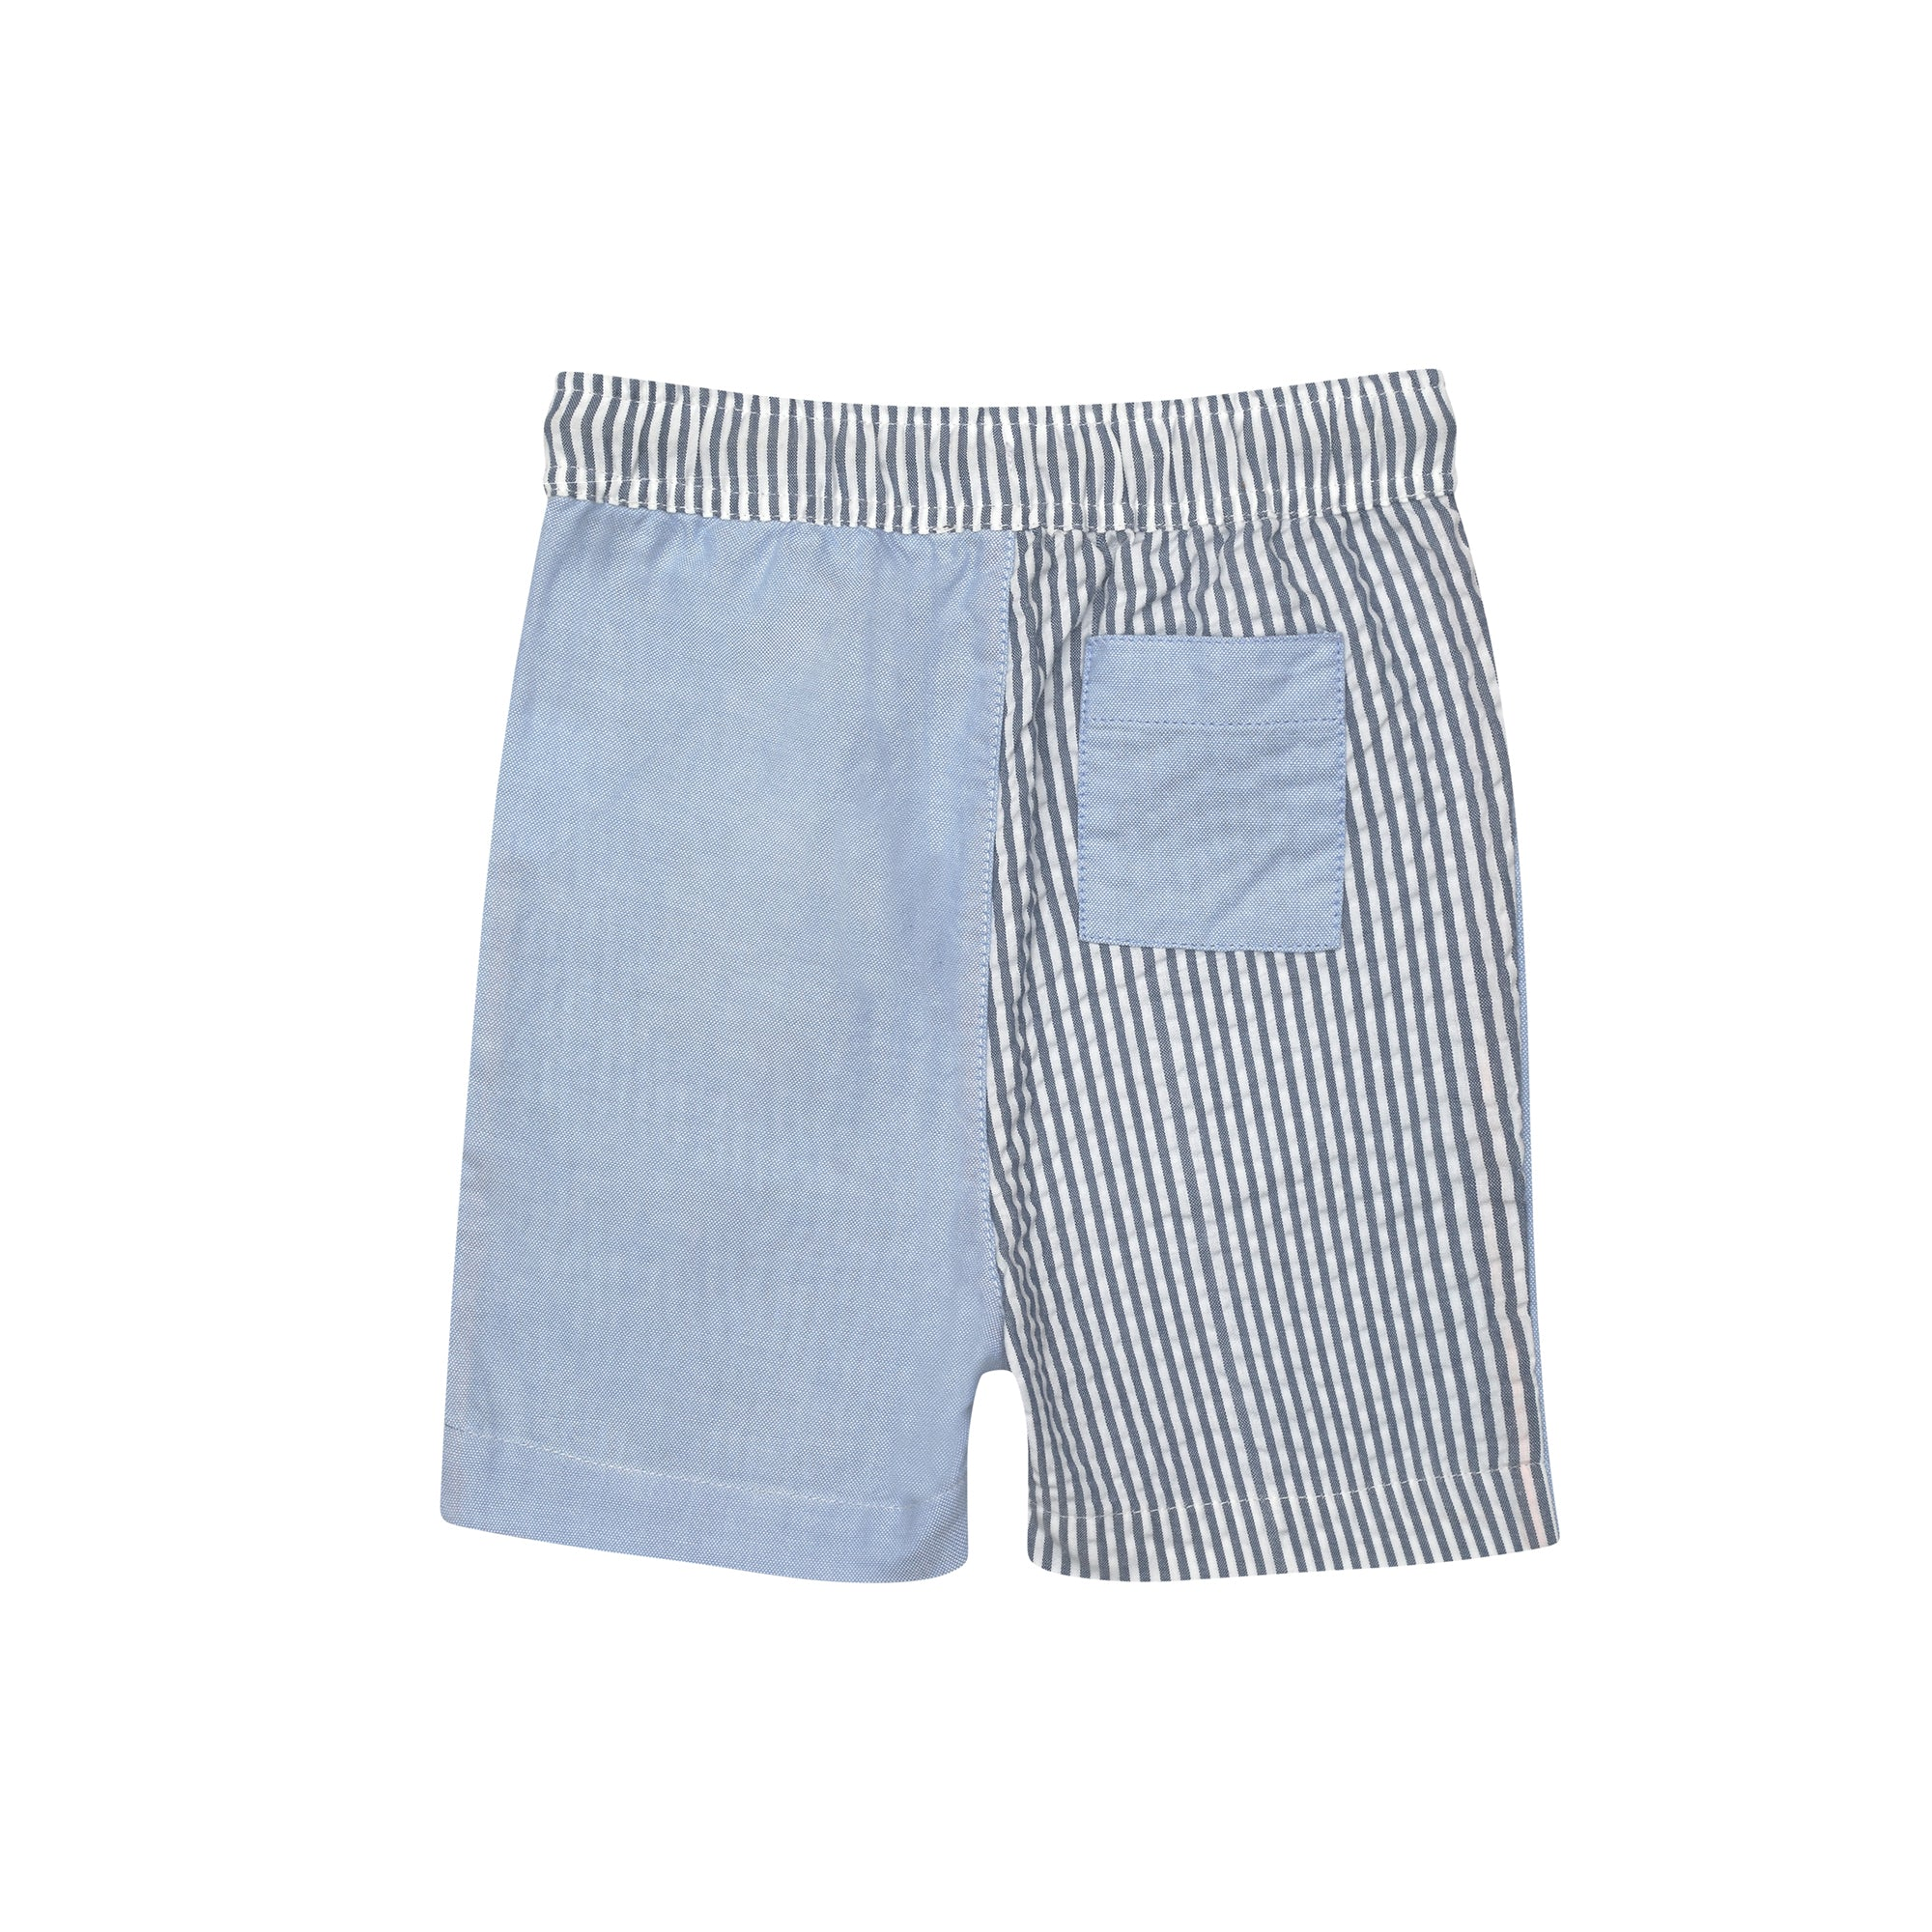 Logan Drawstring Shorts